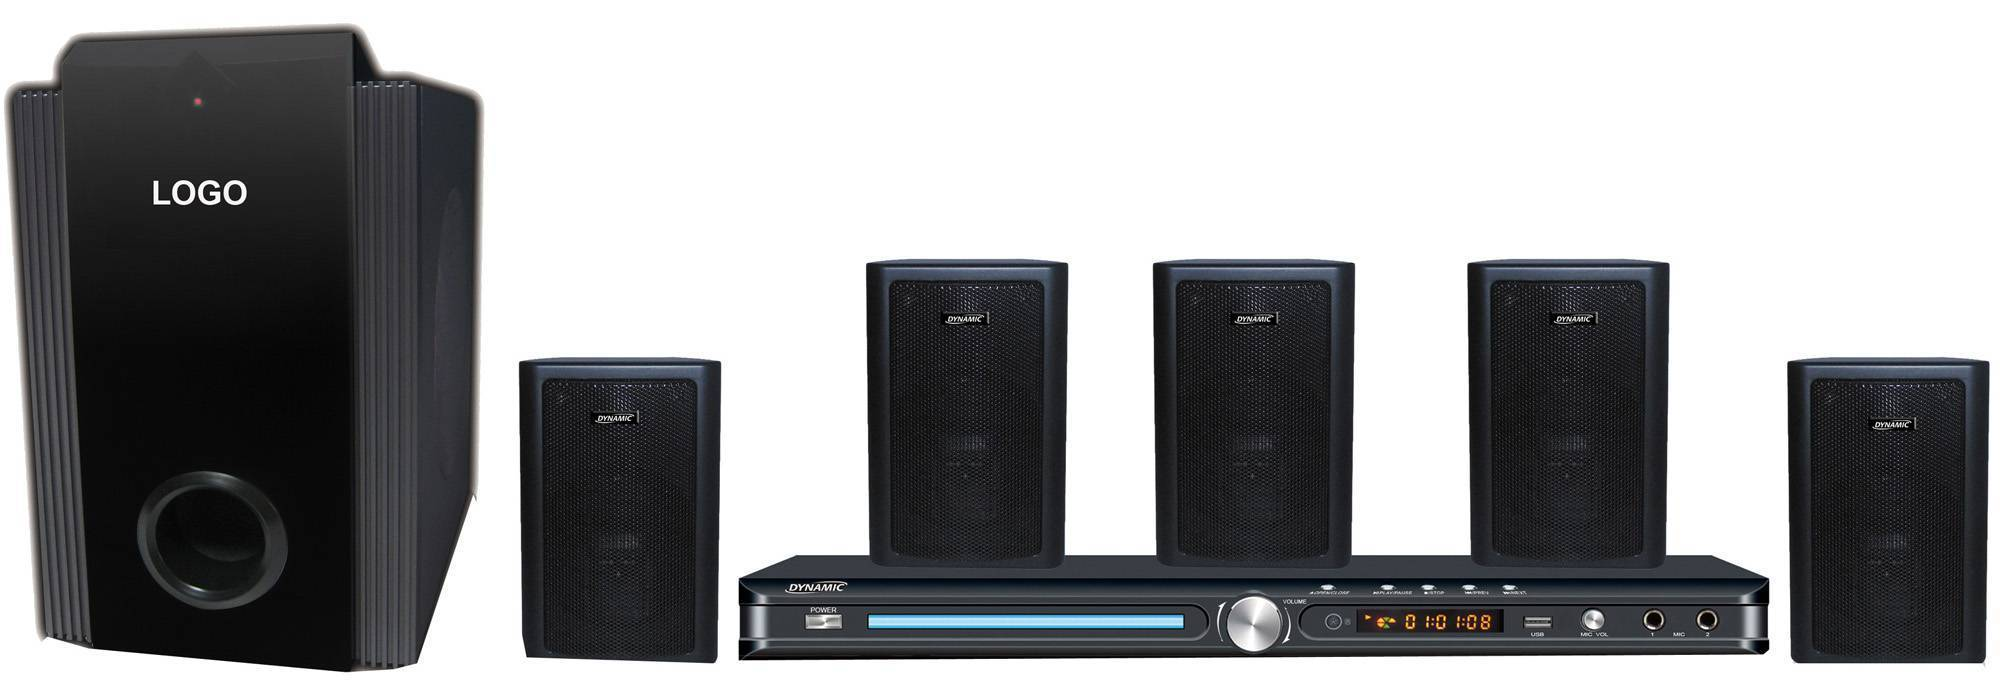 105w home theater